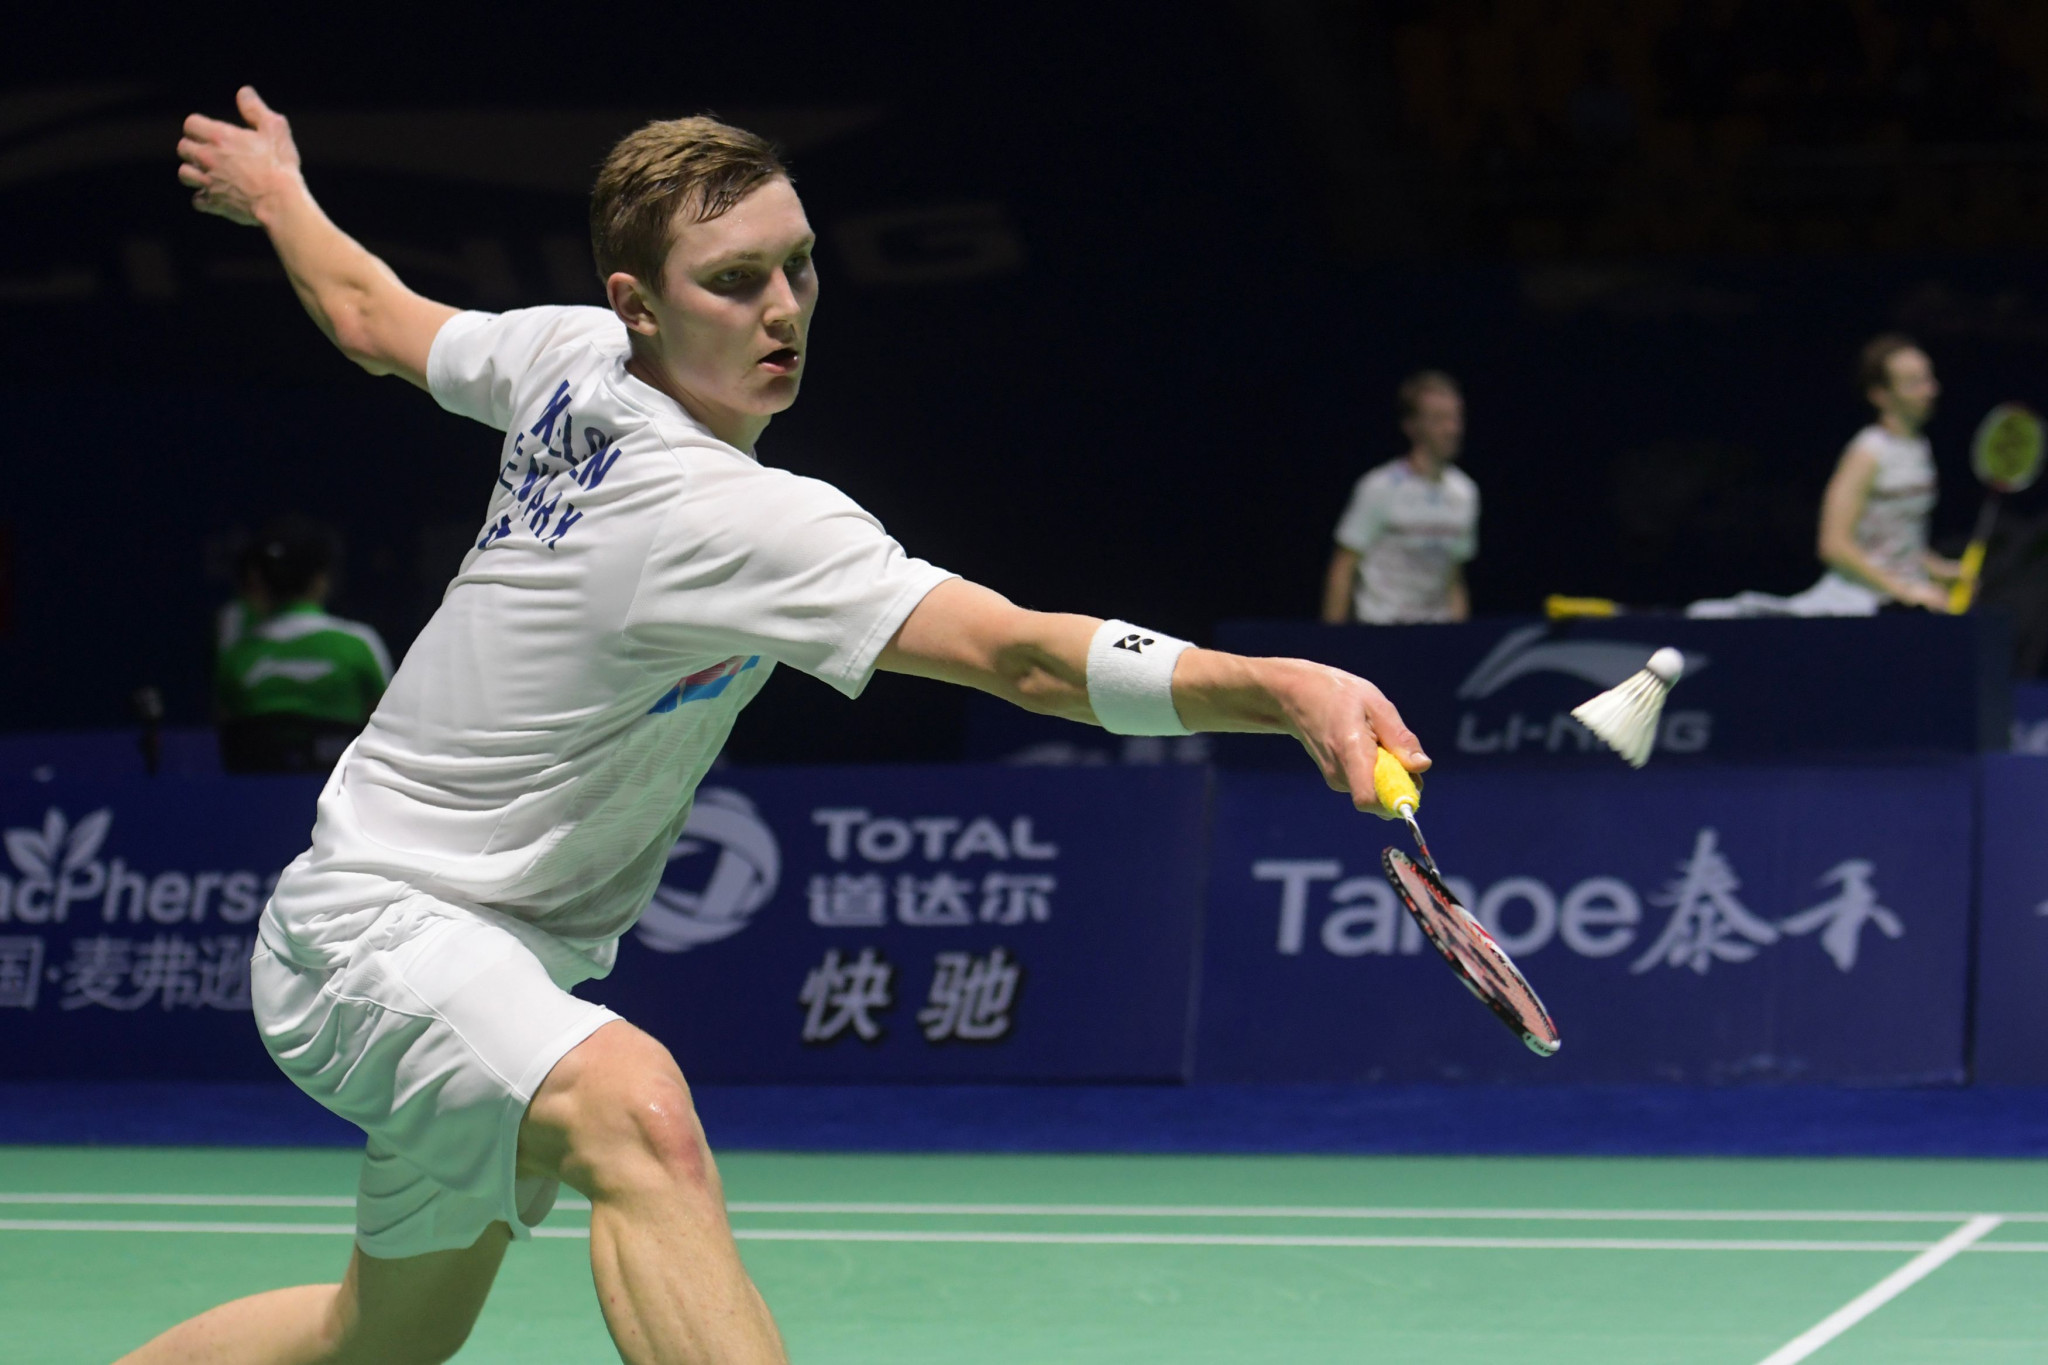 Men's top seed Viktor Axelsen marched into the semi-finals ©Getty Images